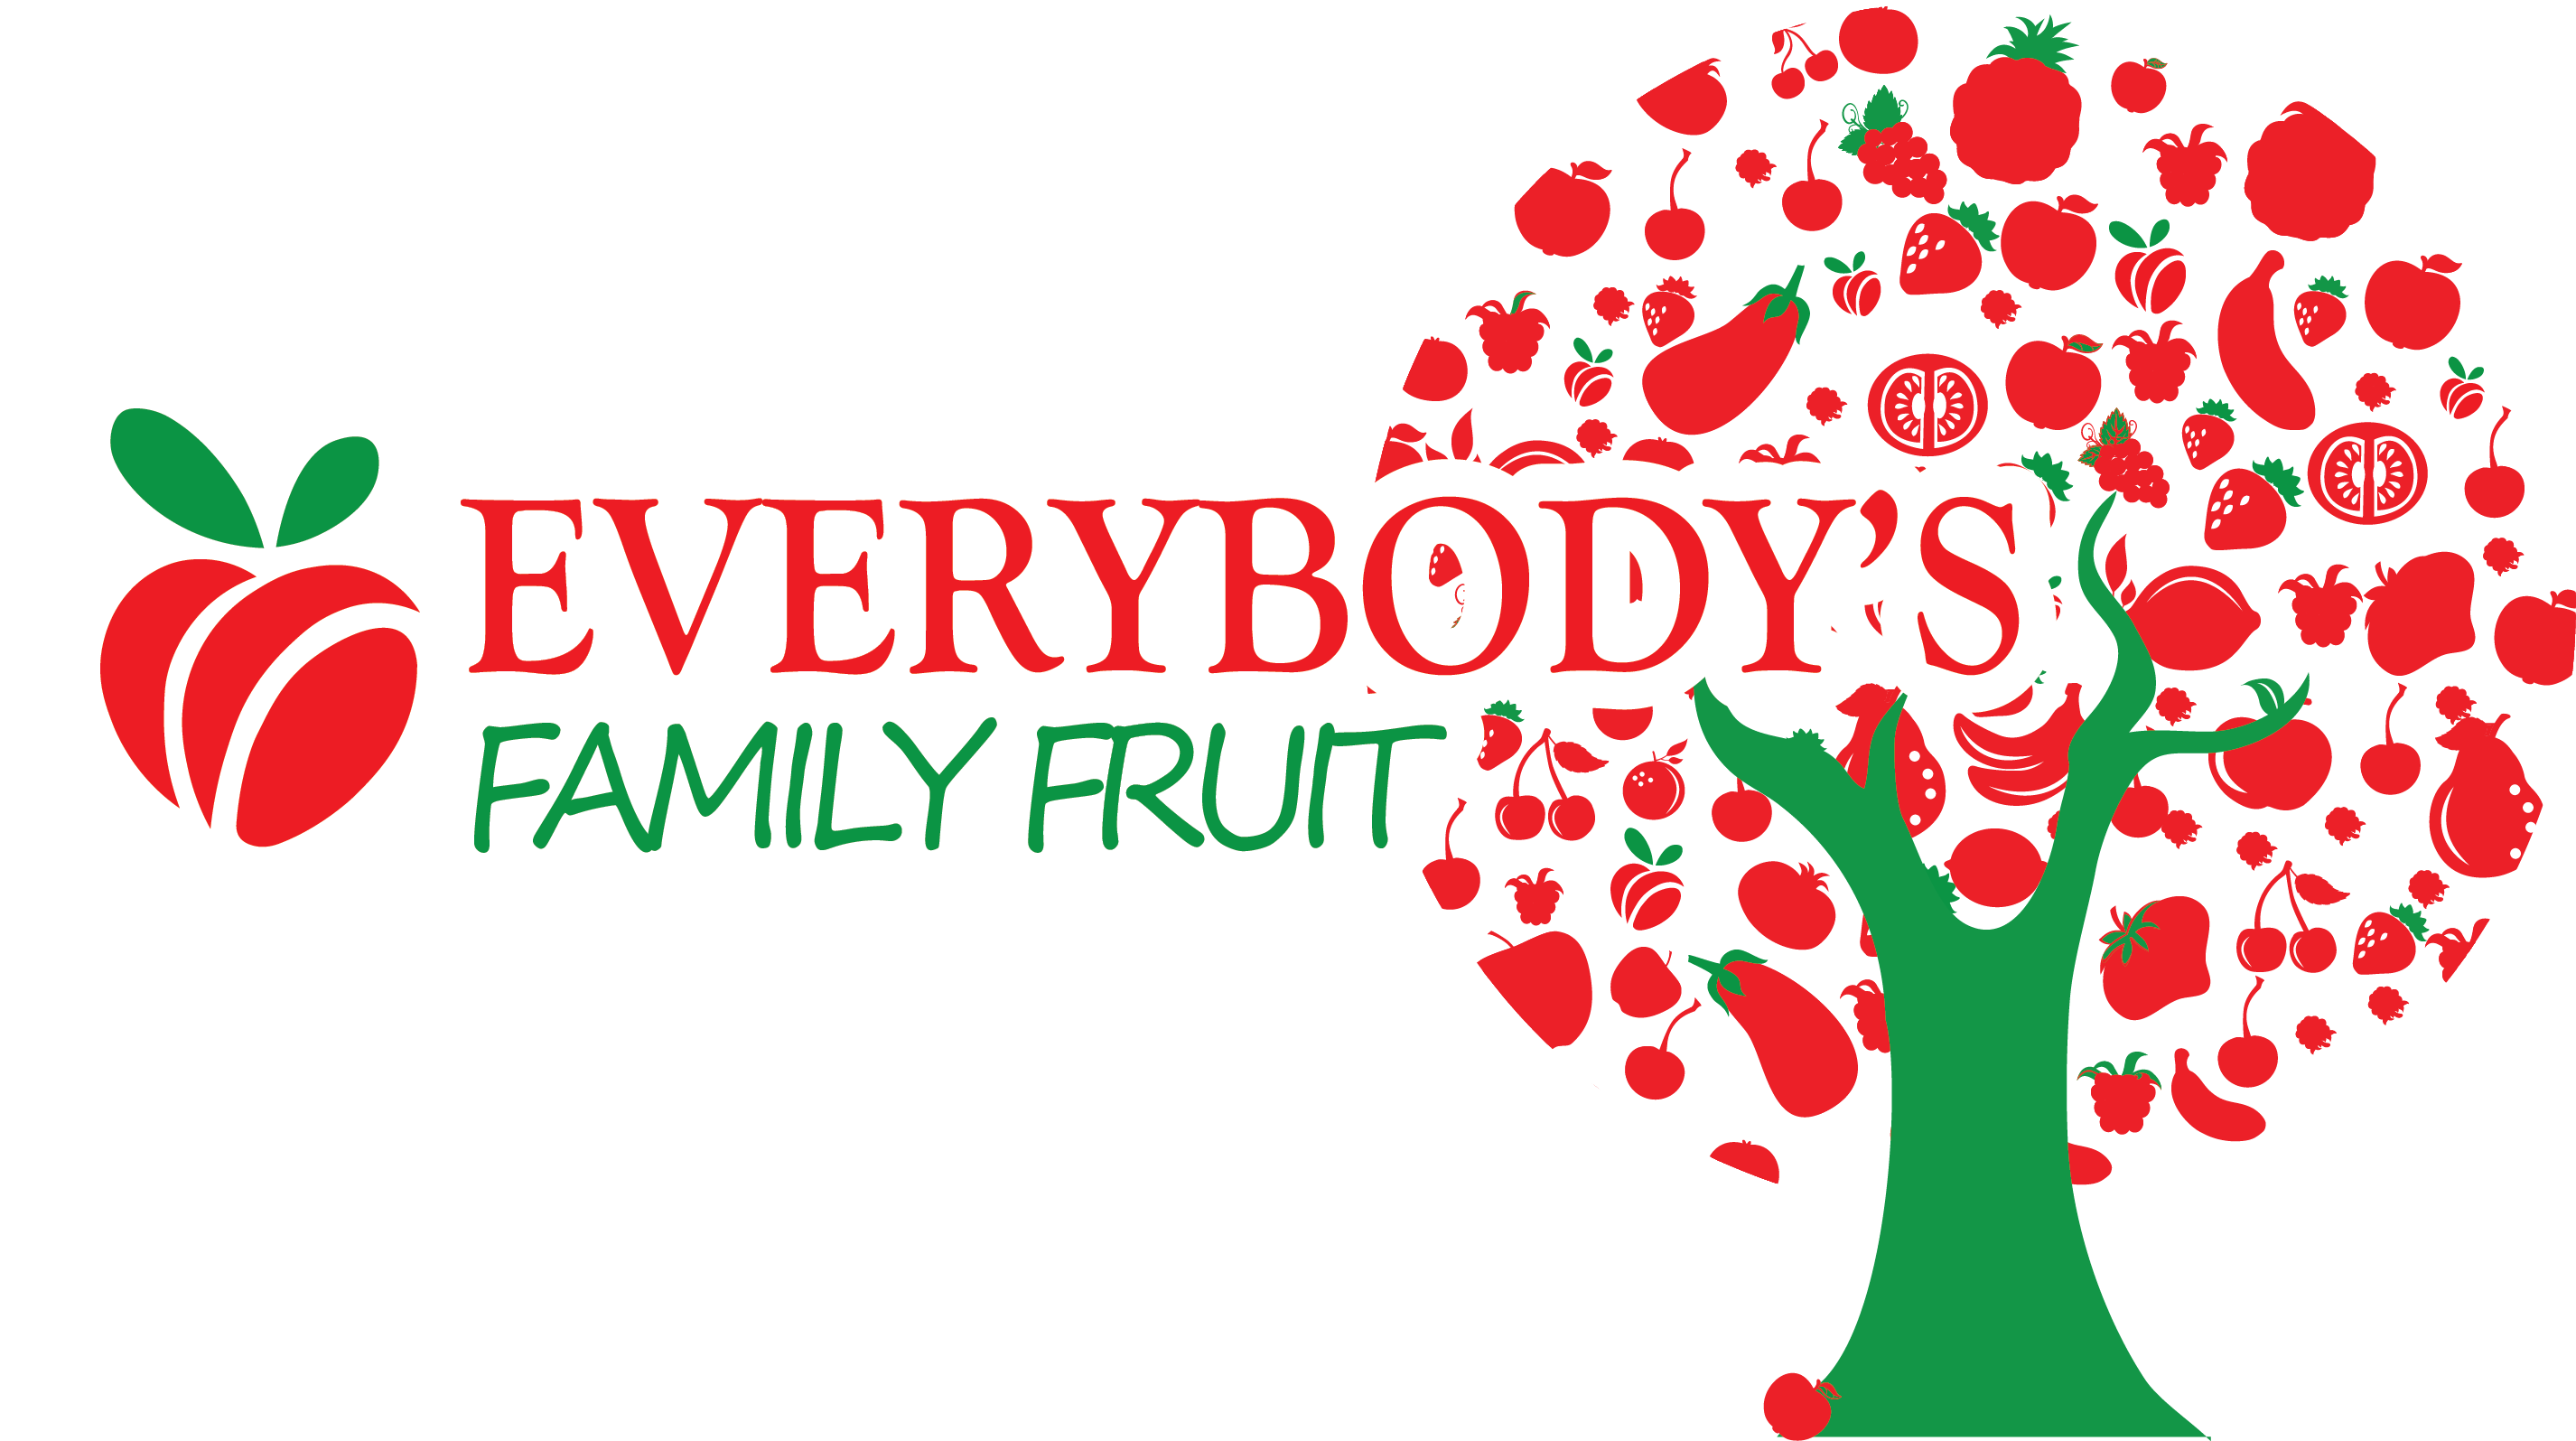 Everybody's Family Fruit